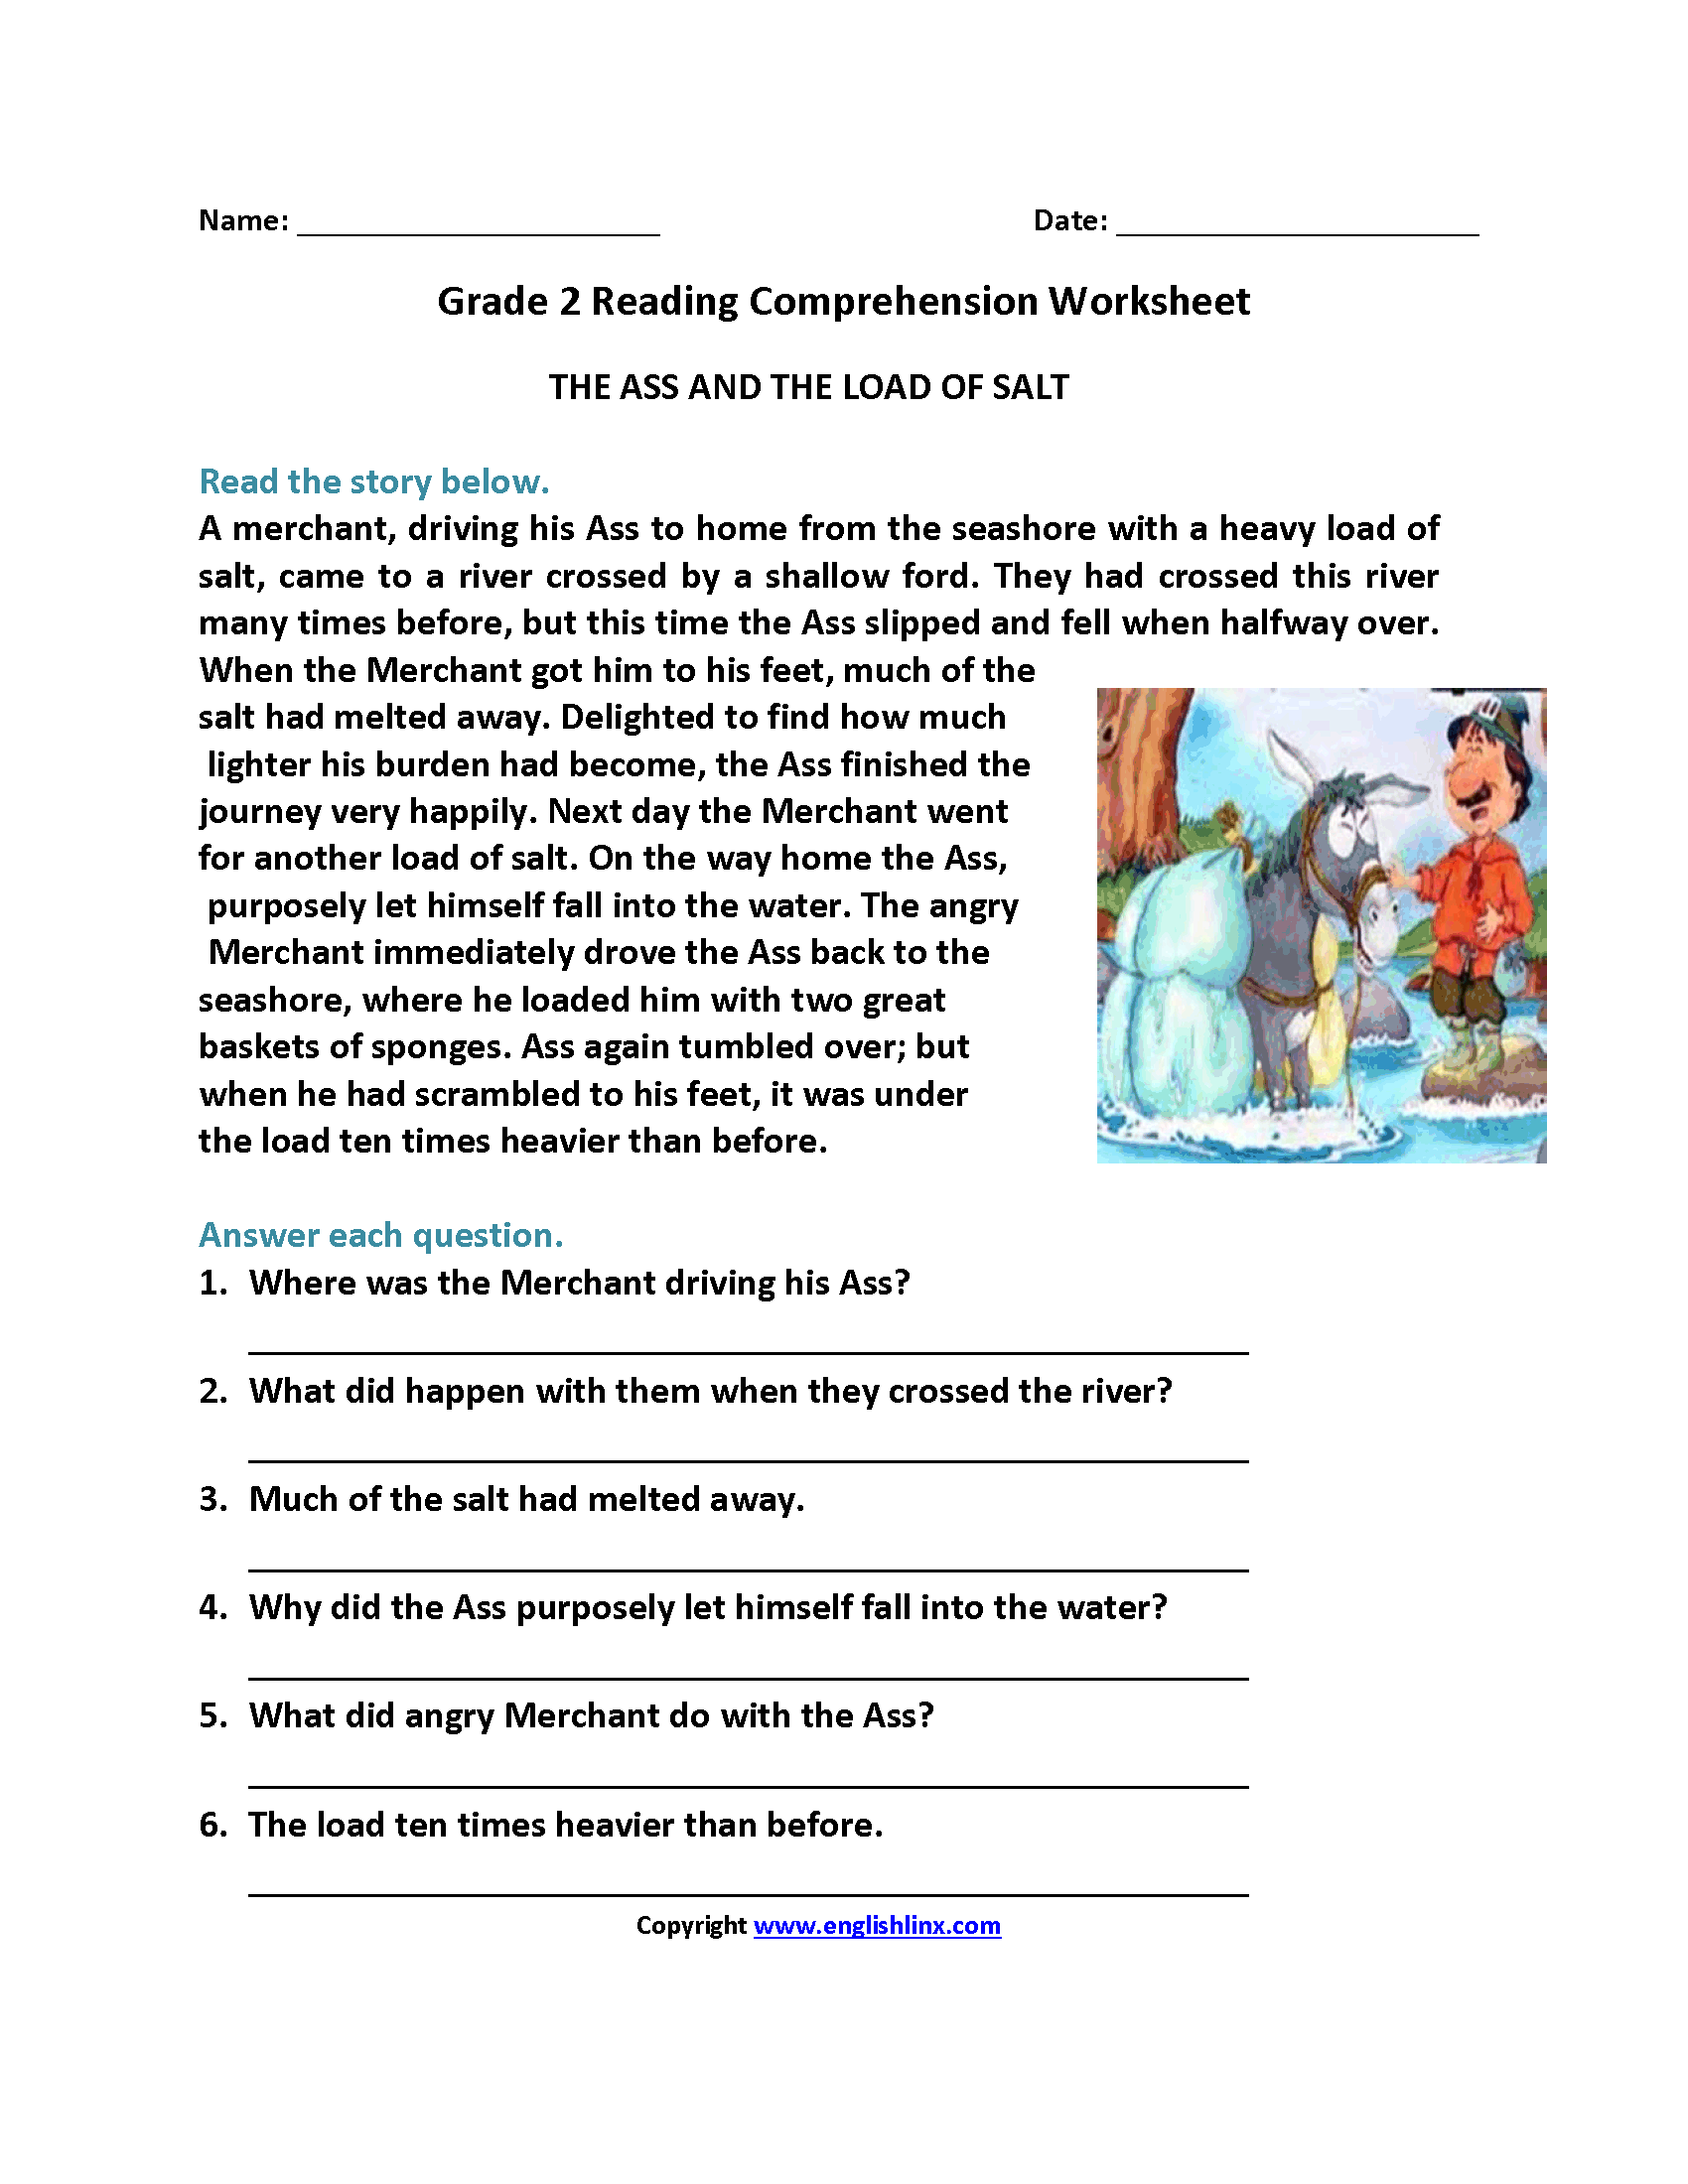 Worksheets 2nd Grade Reading Comprehension Worksheet ass and load of salt second grade reading worksheets worksheets